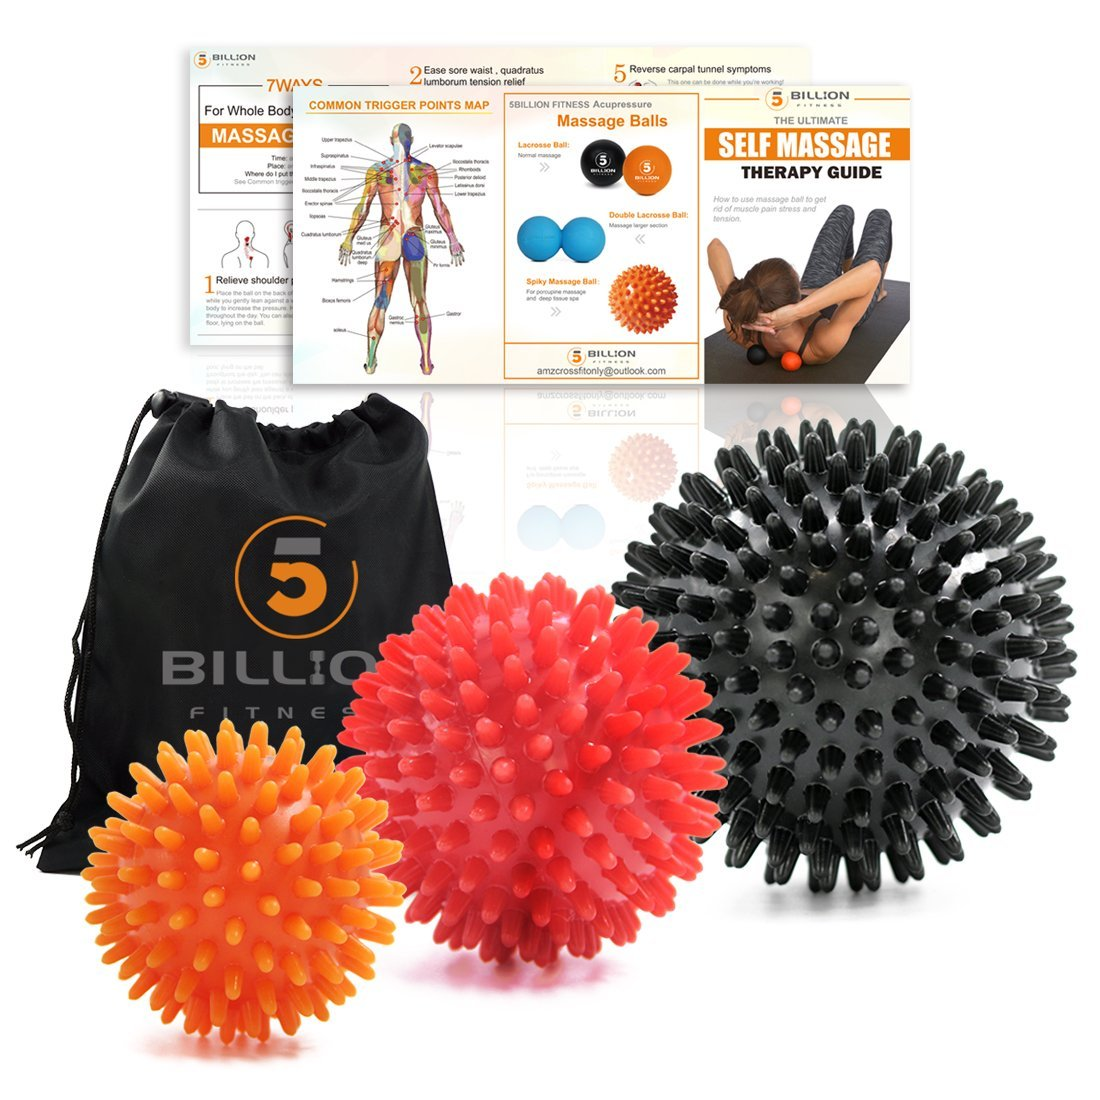 5BILLION Massage Balls - Lacrosse Balls, Massage Tennis Balls, Stress Balls - Deep Tissue Massage Tool for Myofascial Release, Muscle Relax, Physical Therapy